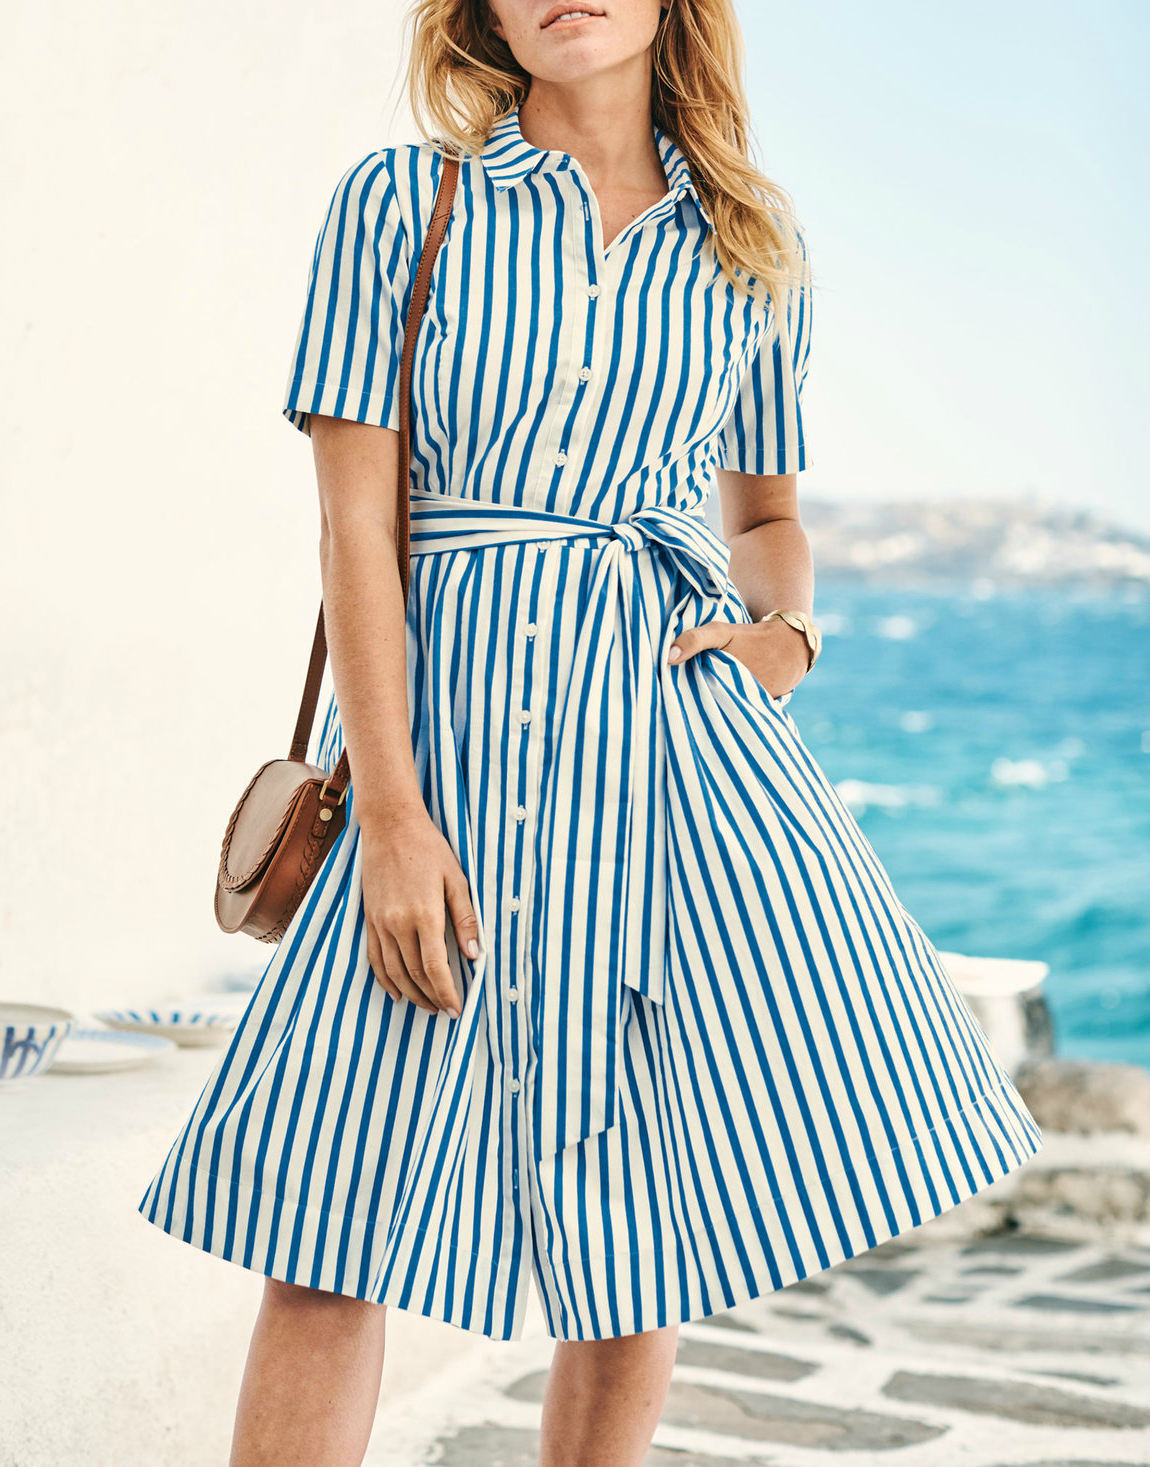 d96e62cd01 Cute Summer Dresses for Women that Travel